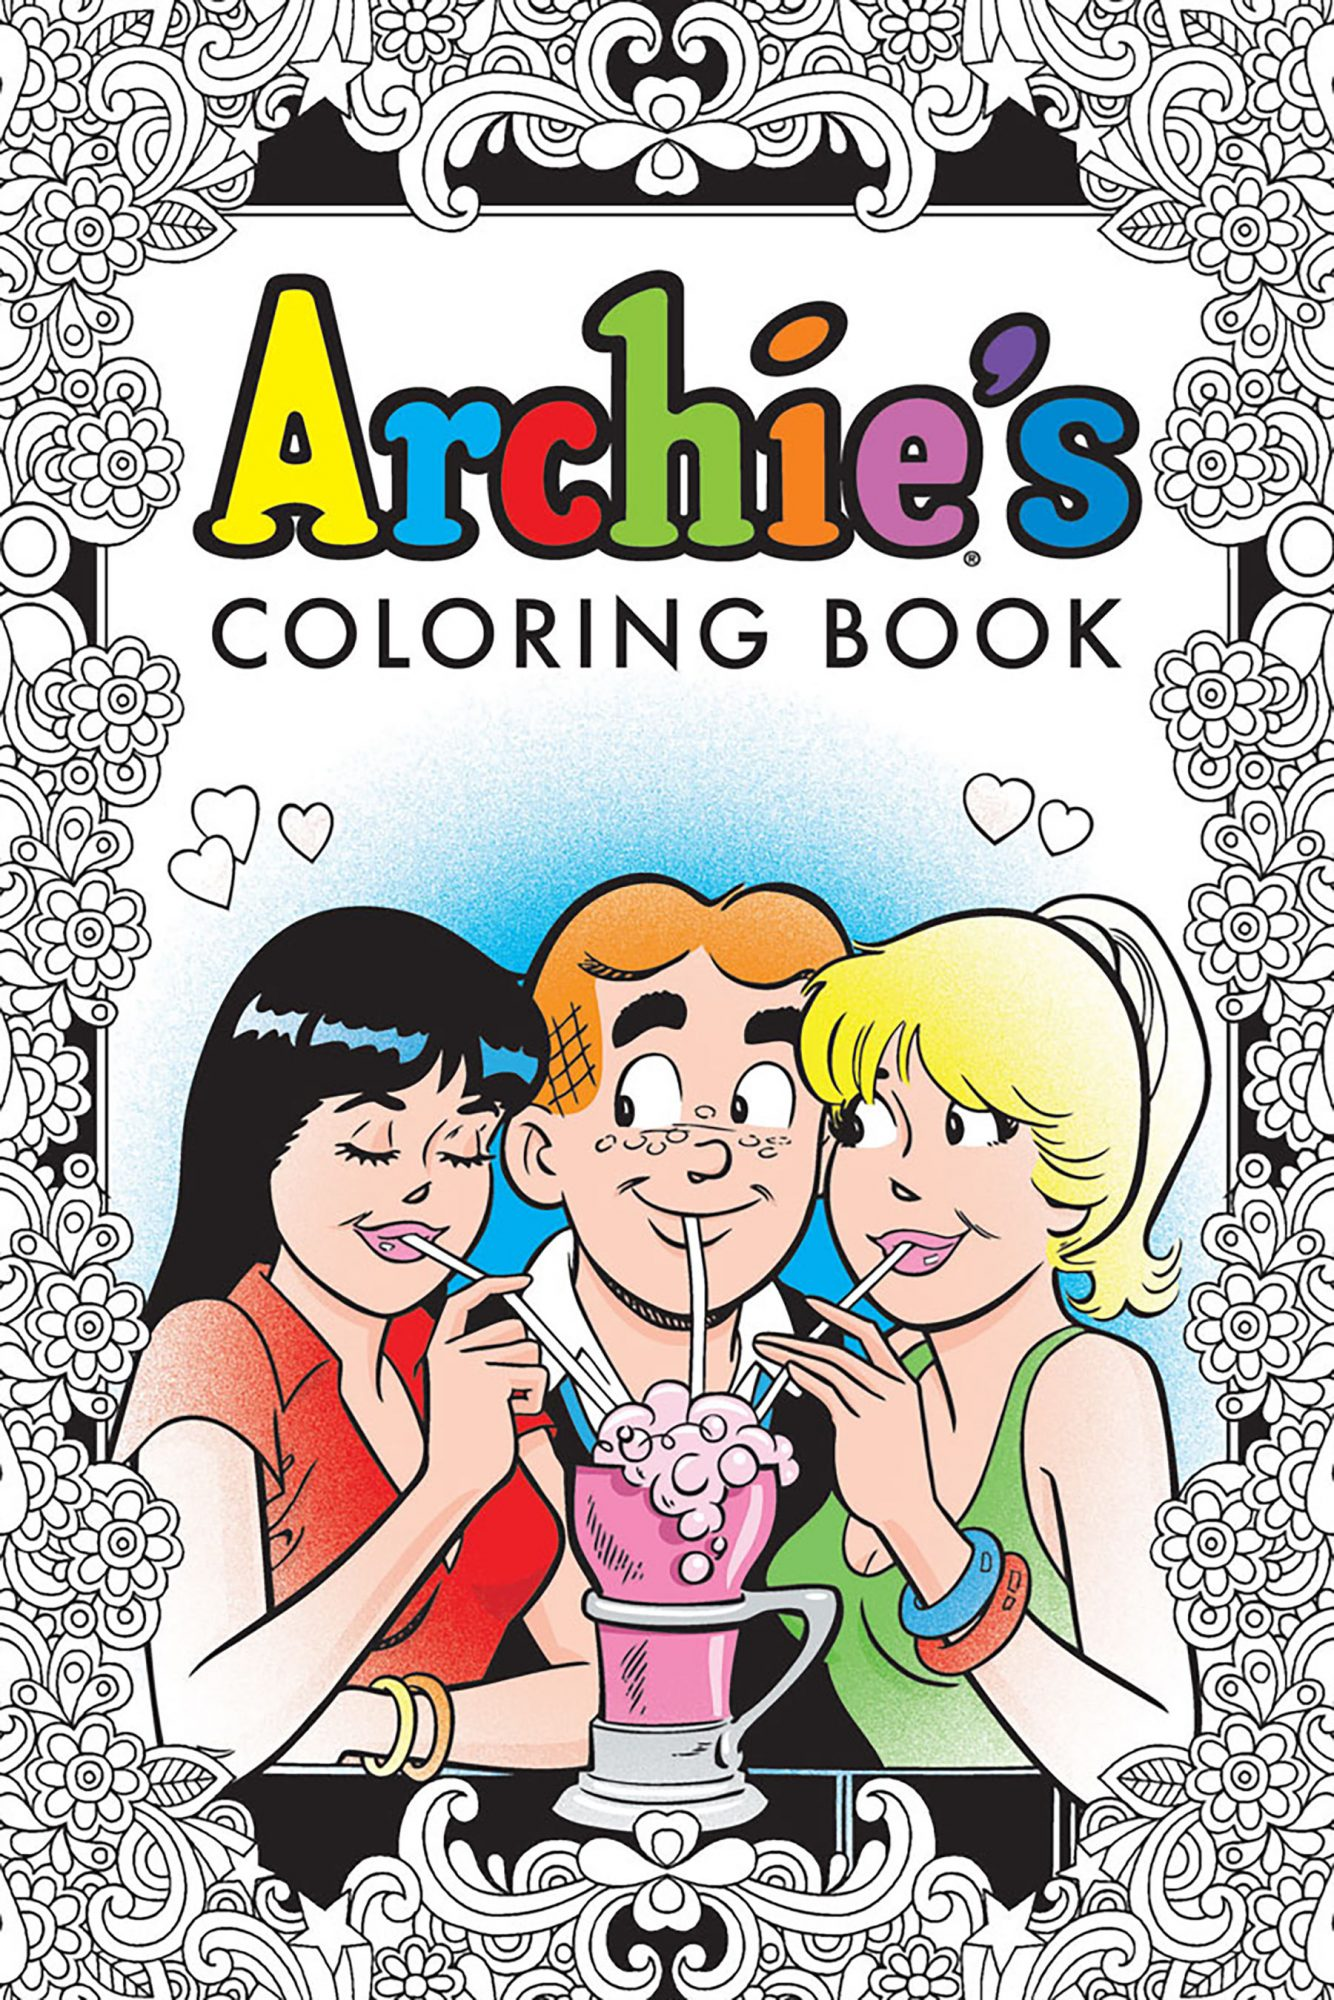 archies-coloring-book